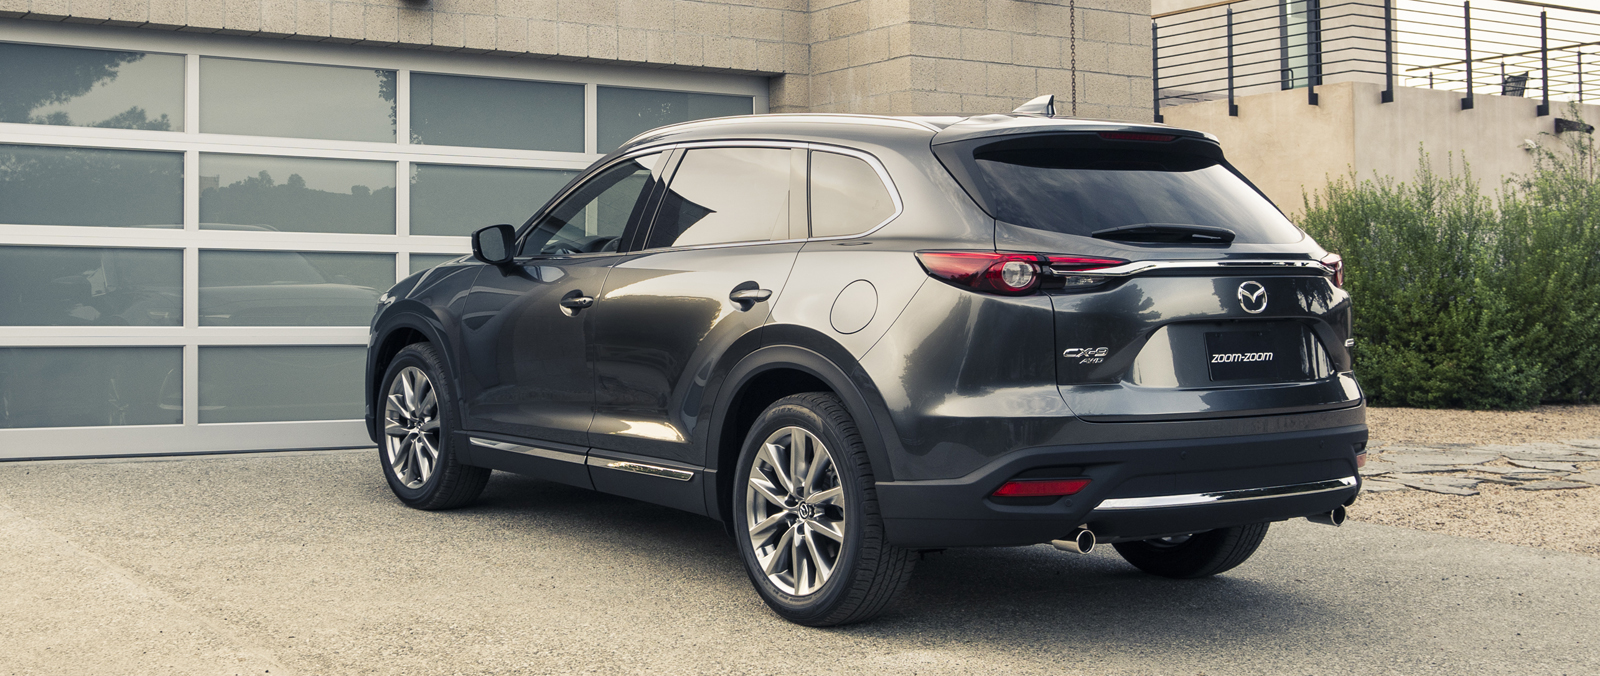 Mazda CX-9 is 7-zits crossover SUV